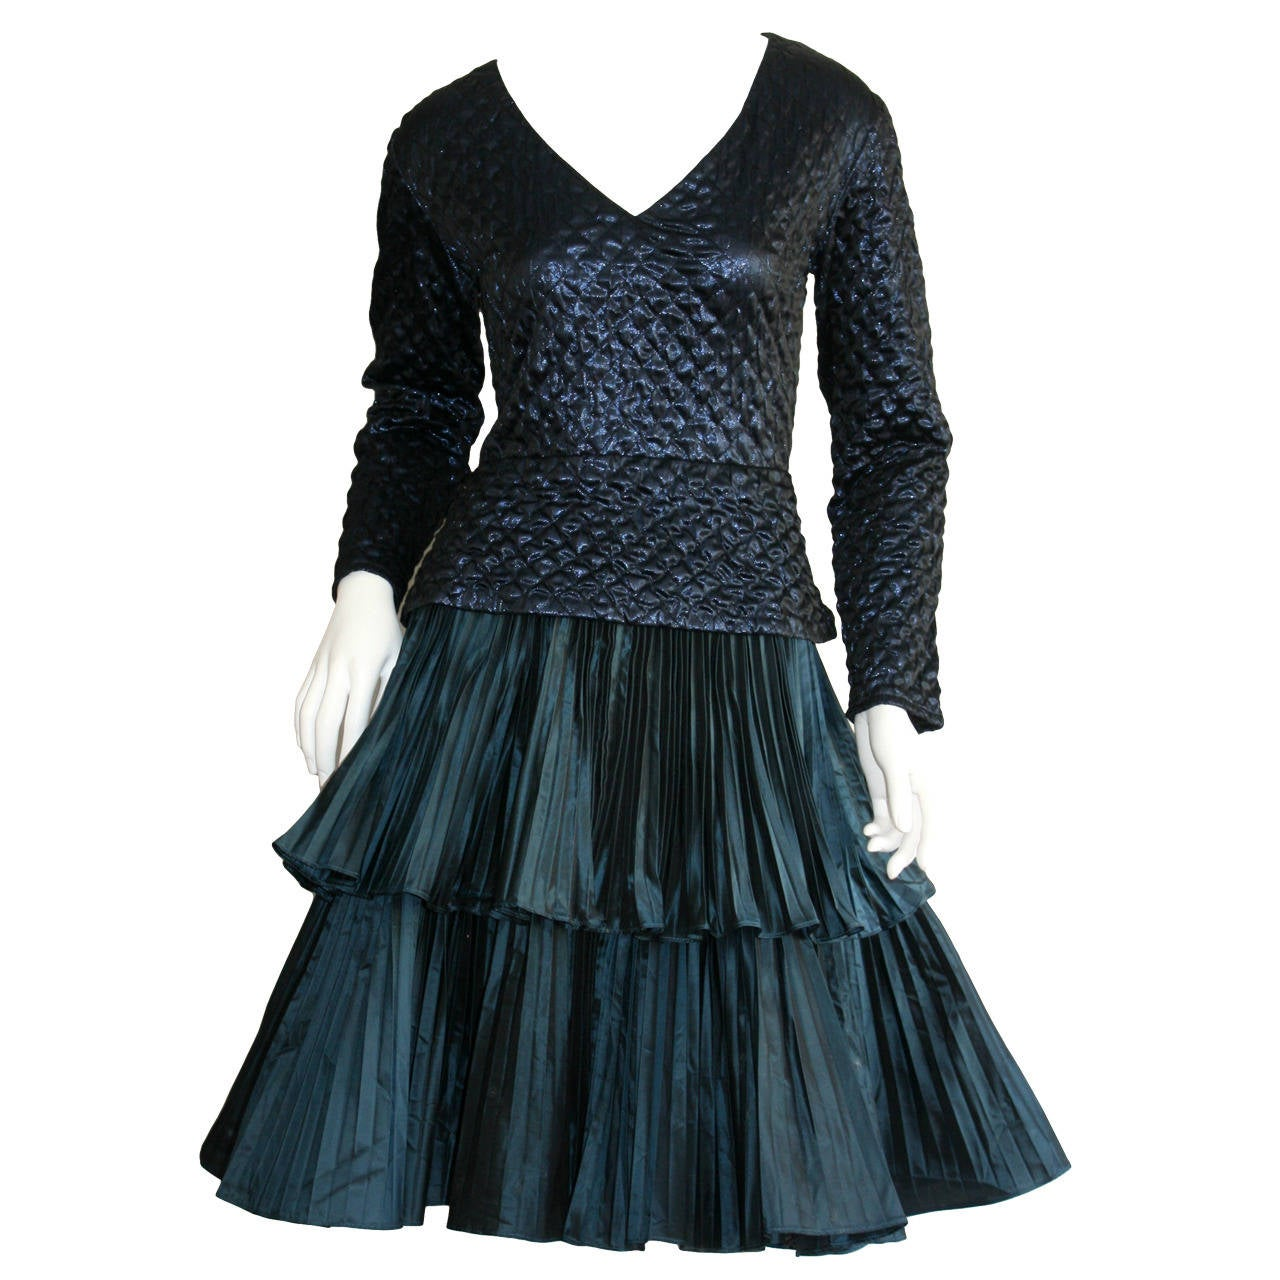 Bernard Perris Beautiful Navy Blue Metallic Quilted Accordion Tiered Dress For Sale